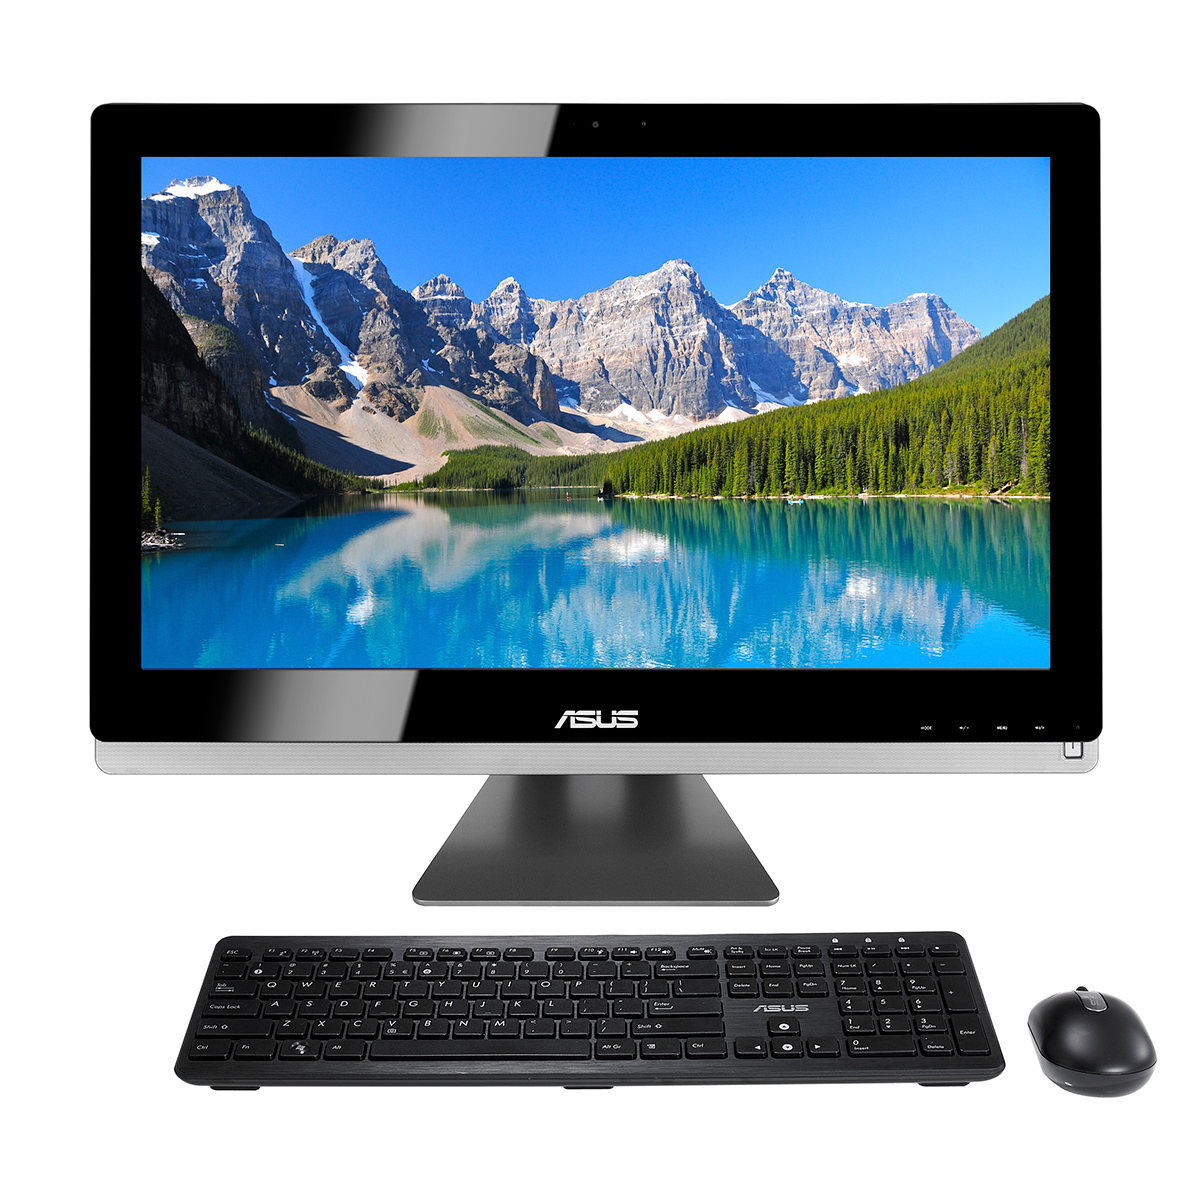 asus all in one pc et2702igth bh002k pc de bureau asus. Black Bedroom Furniture Sets. Home Design Ideas